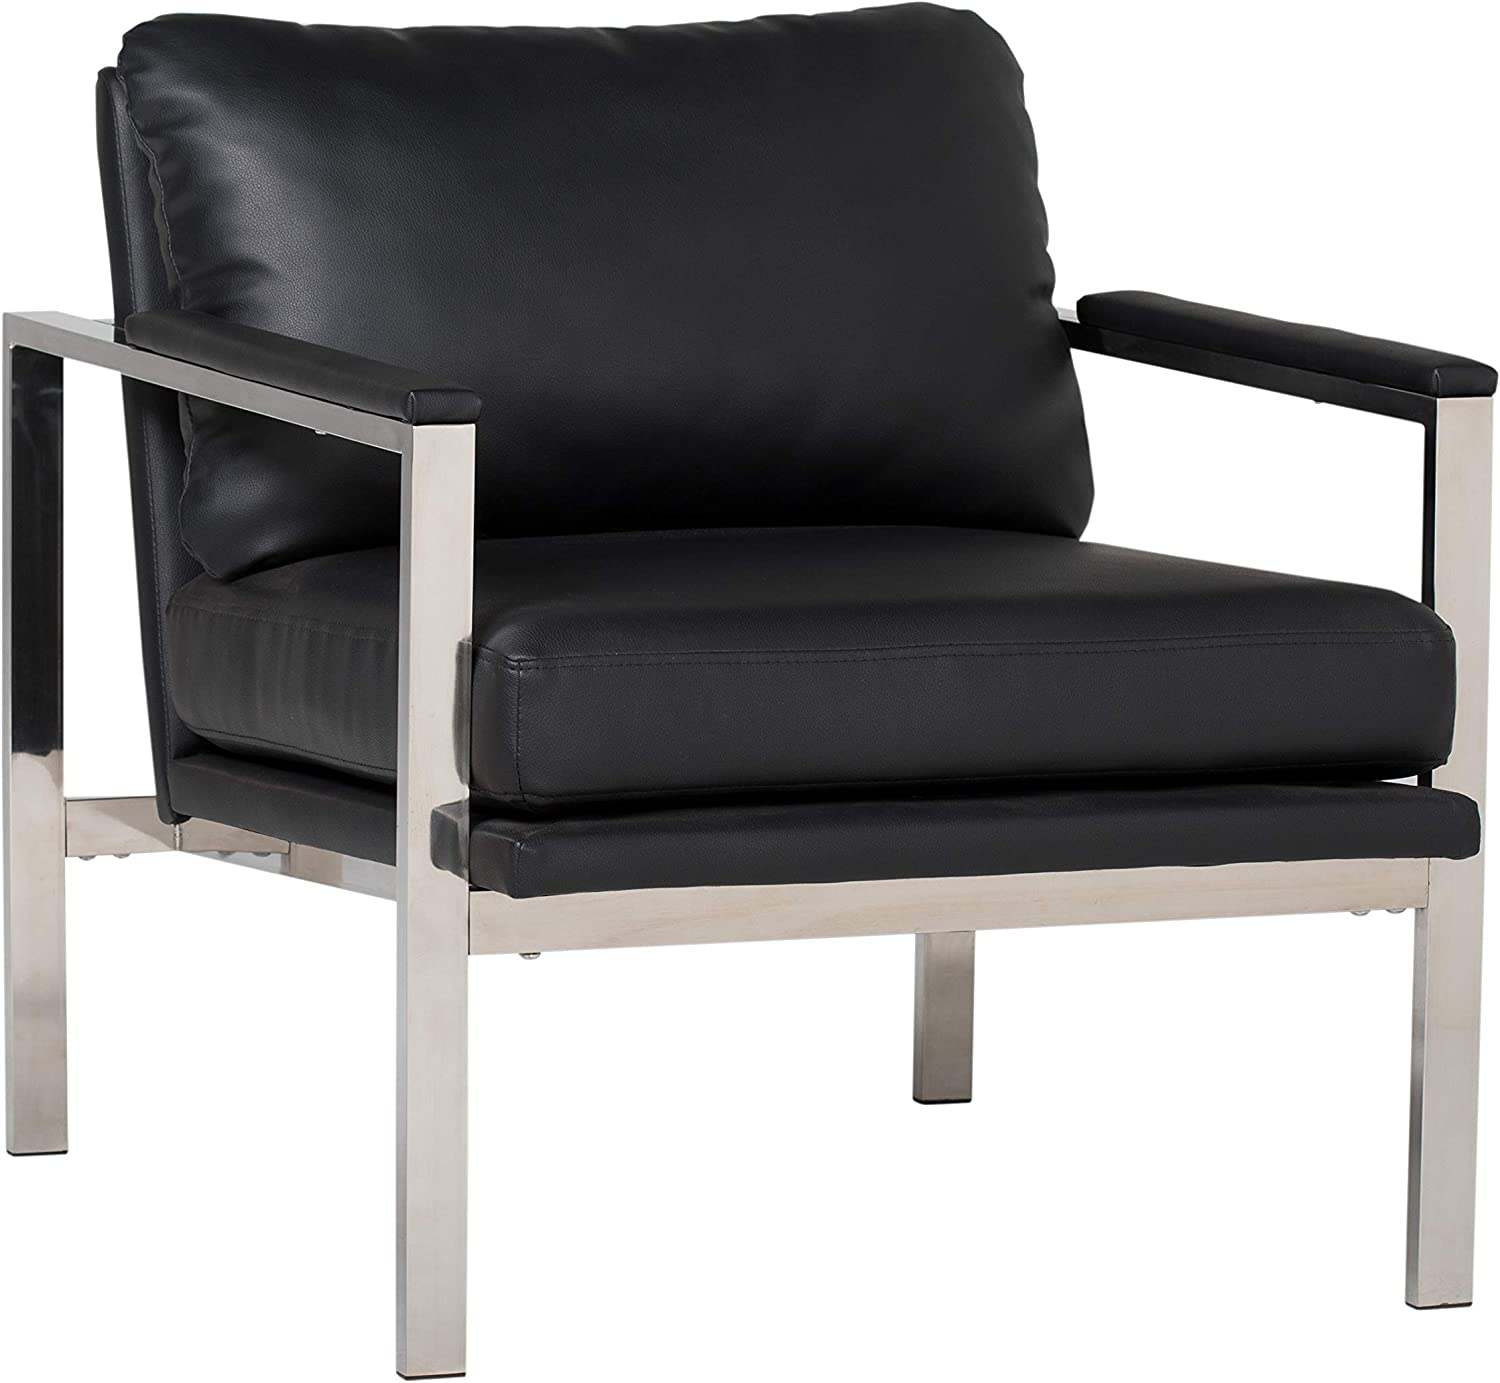 "Studio Designs Home Lintel Modern Leather Arm Chair in Chrome/Black , 28"" W x 32"" D x 33"" H"